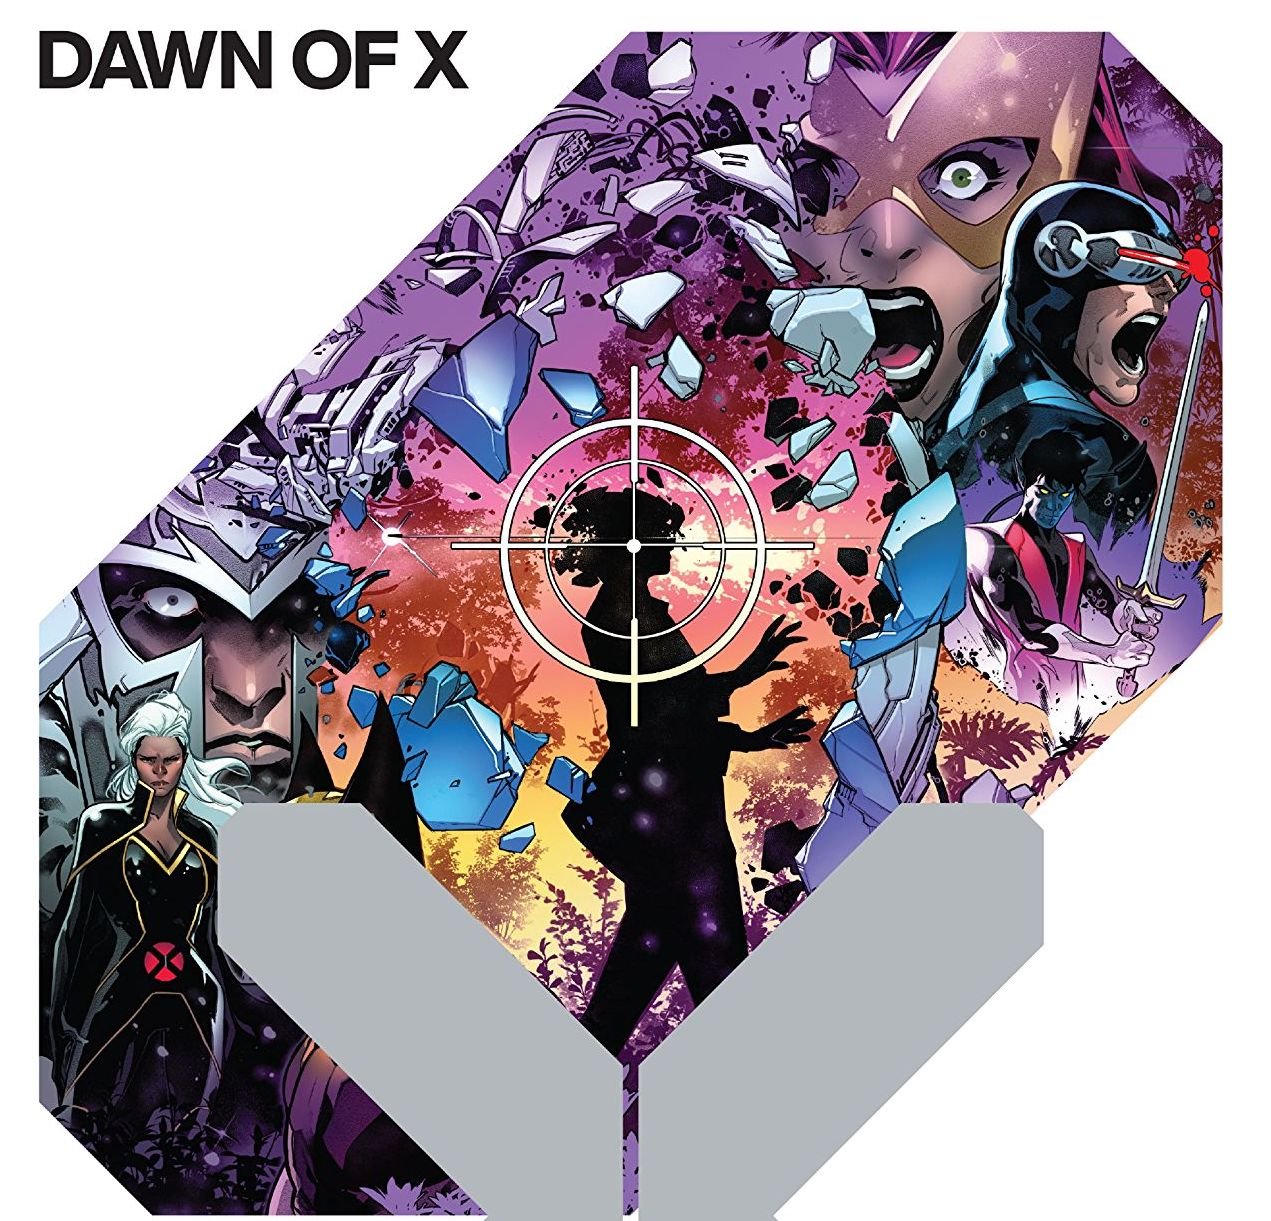 Dawn of X Vol. 2 Review